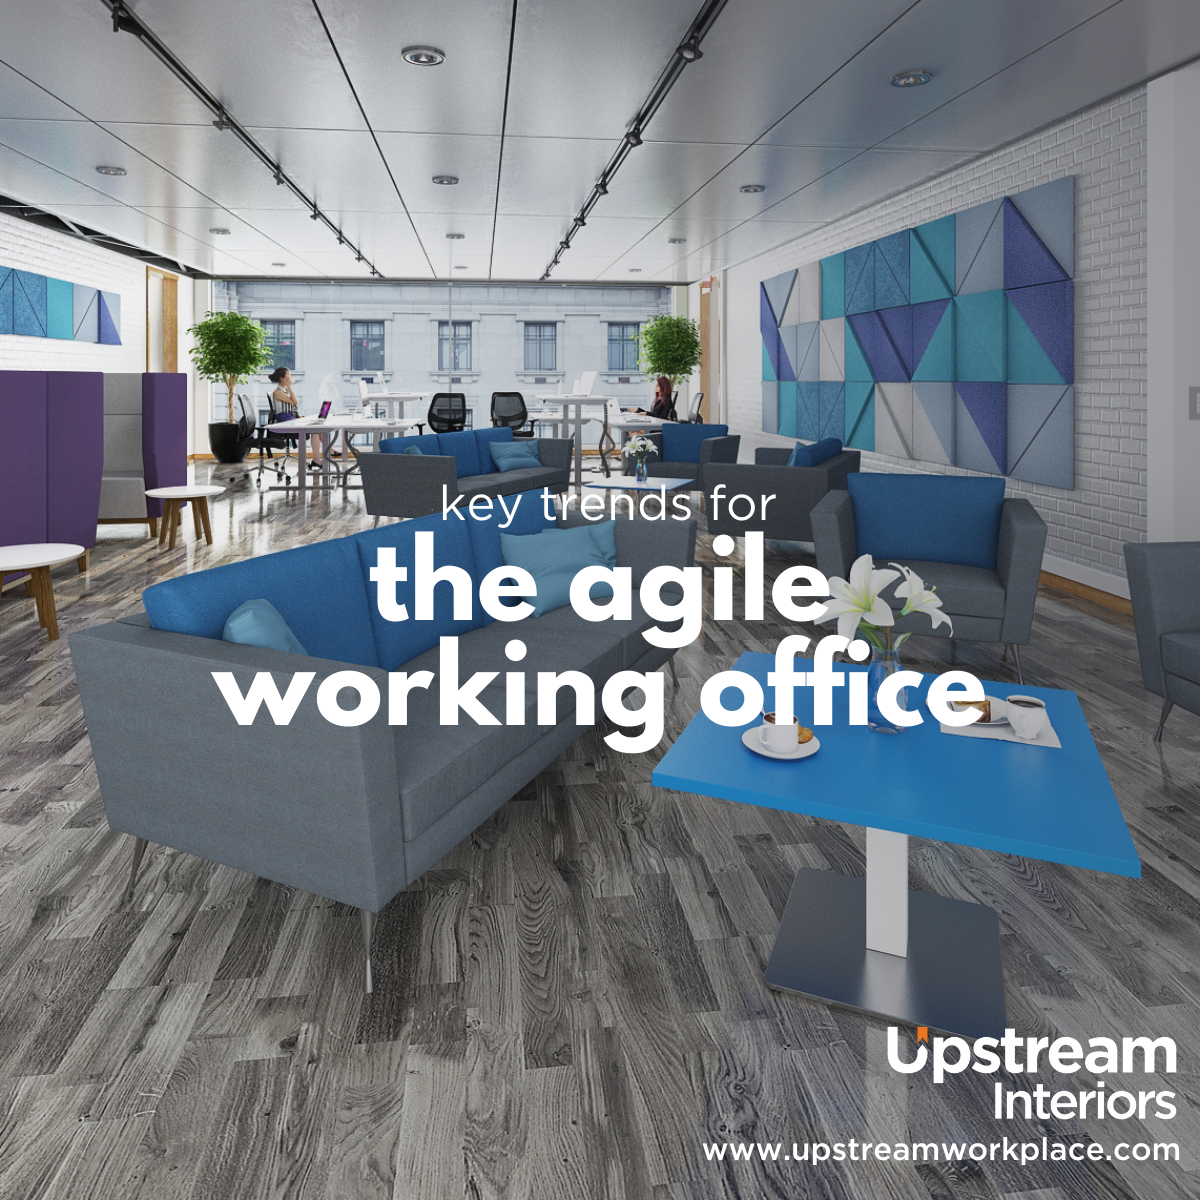 Key trends for the agile working office